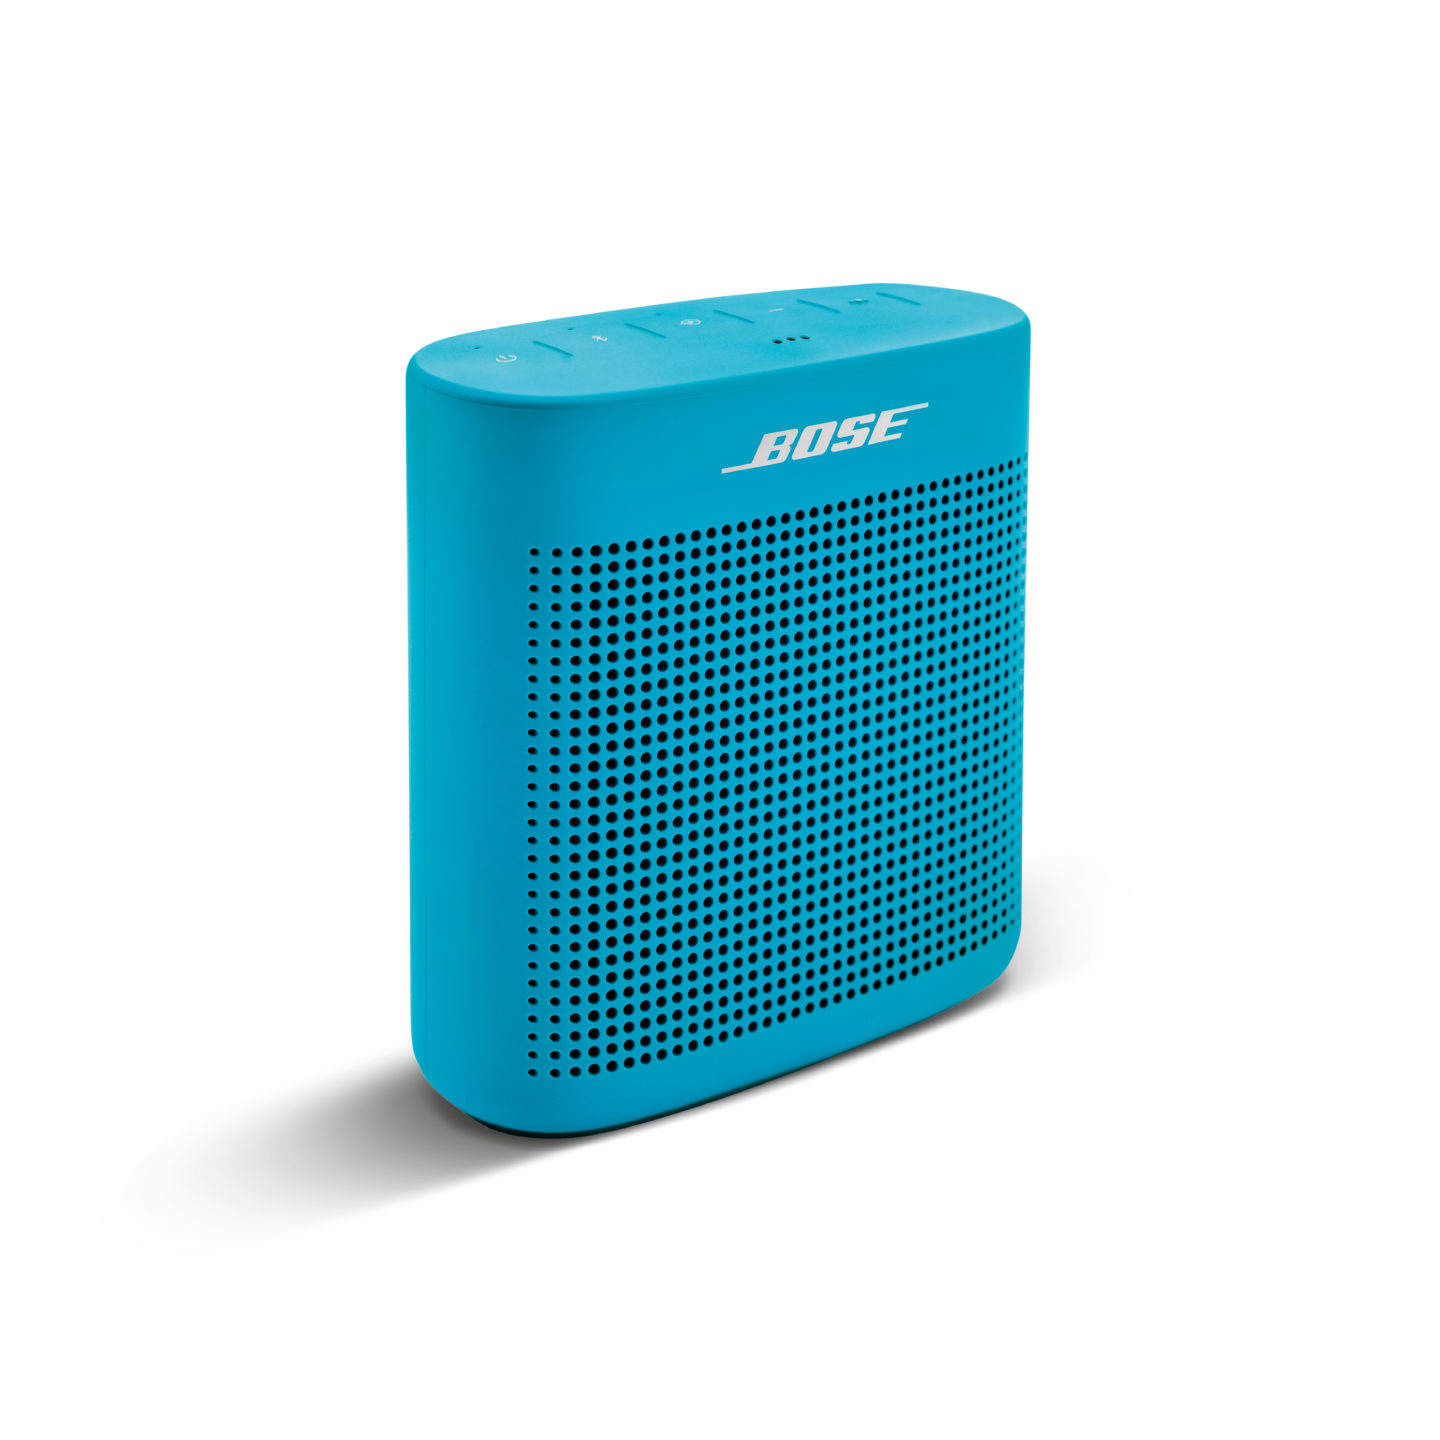 Holiday gifts for creatives - Bose Speakers